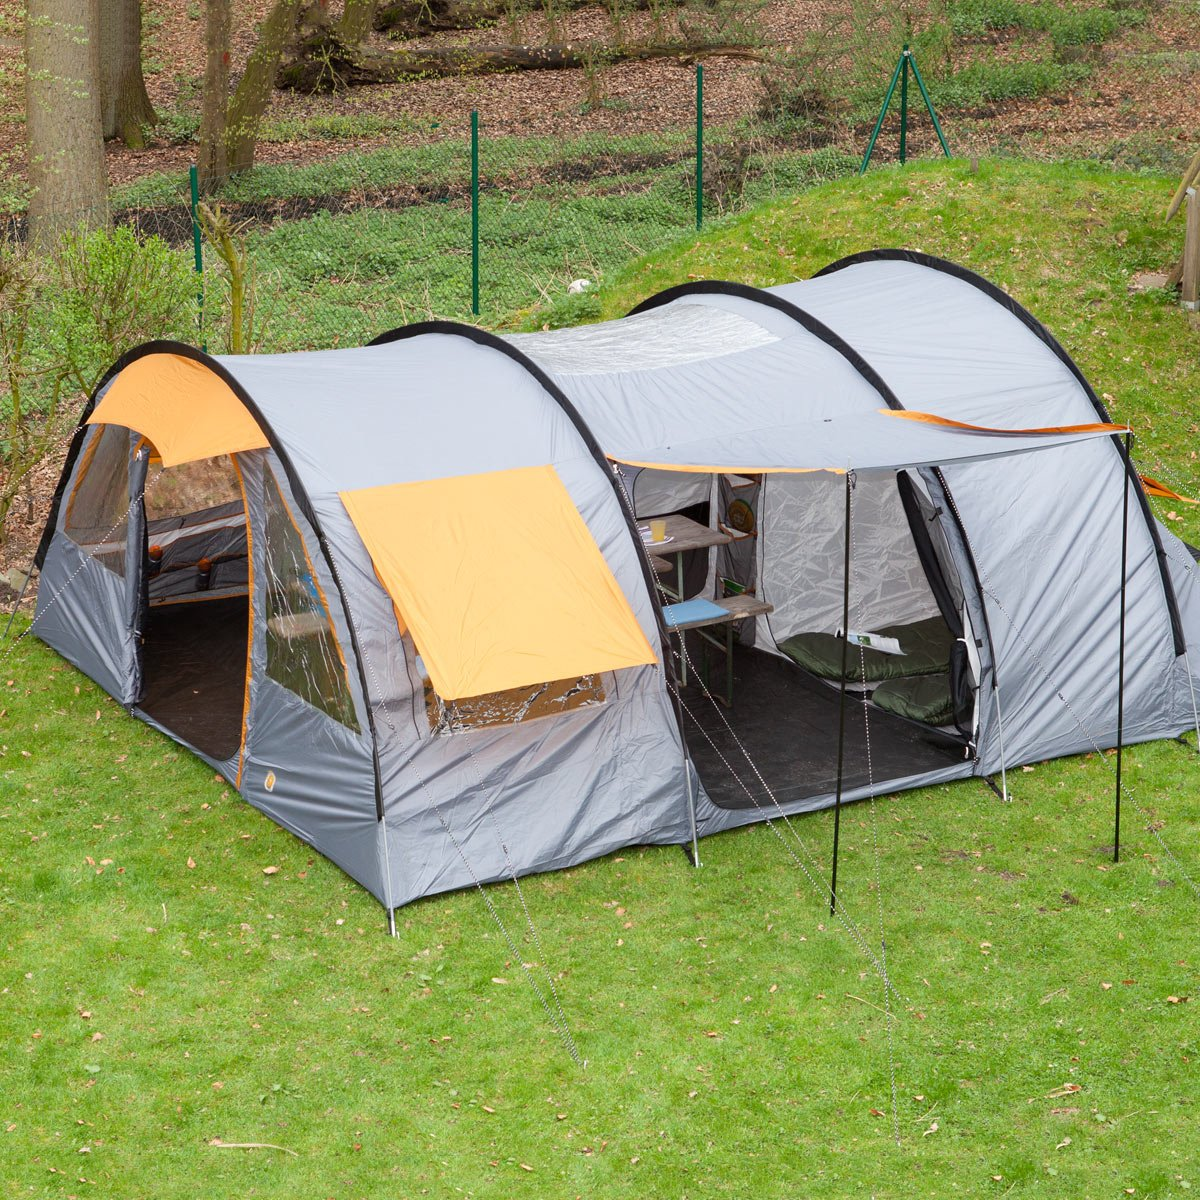 Grand Canyon Parks Six-Person Family Tent - Stone/Sand Amazon.co.uk Sports u0026 Outdoors & Grand Canyon Parks Six-Person Family Tent - Stone/Sand: Amazon.co ...